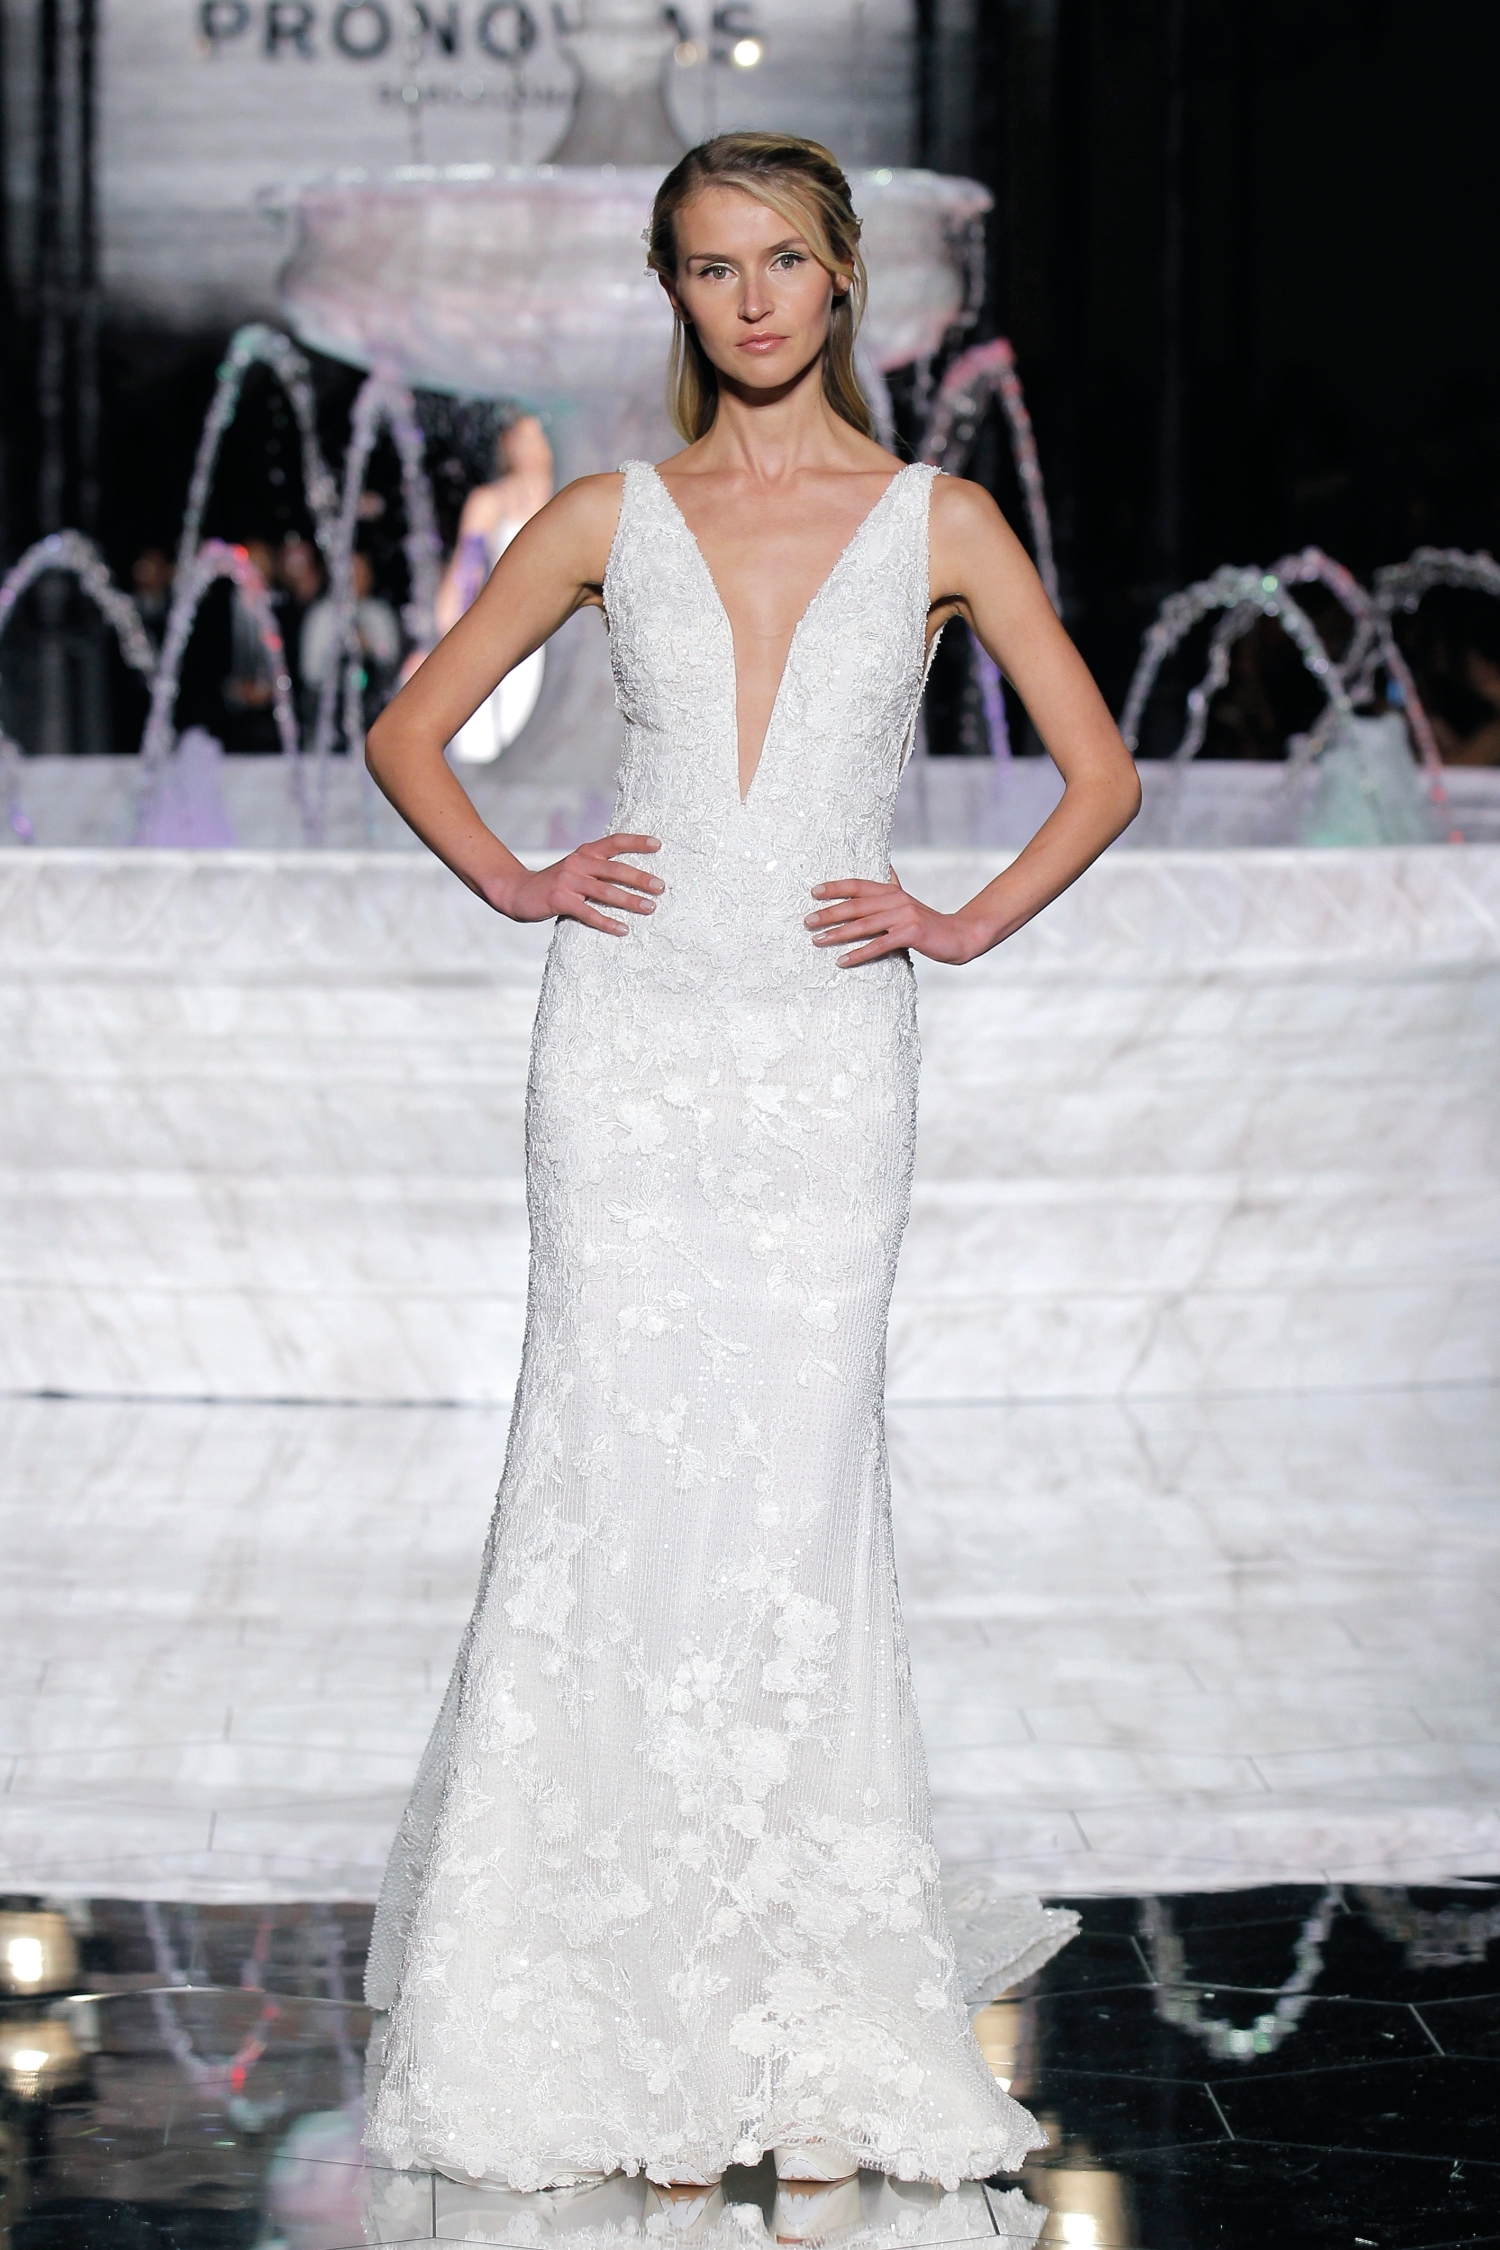 1-PRONOVIAS FASHION SHOW_Romina